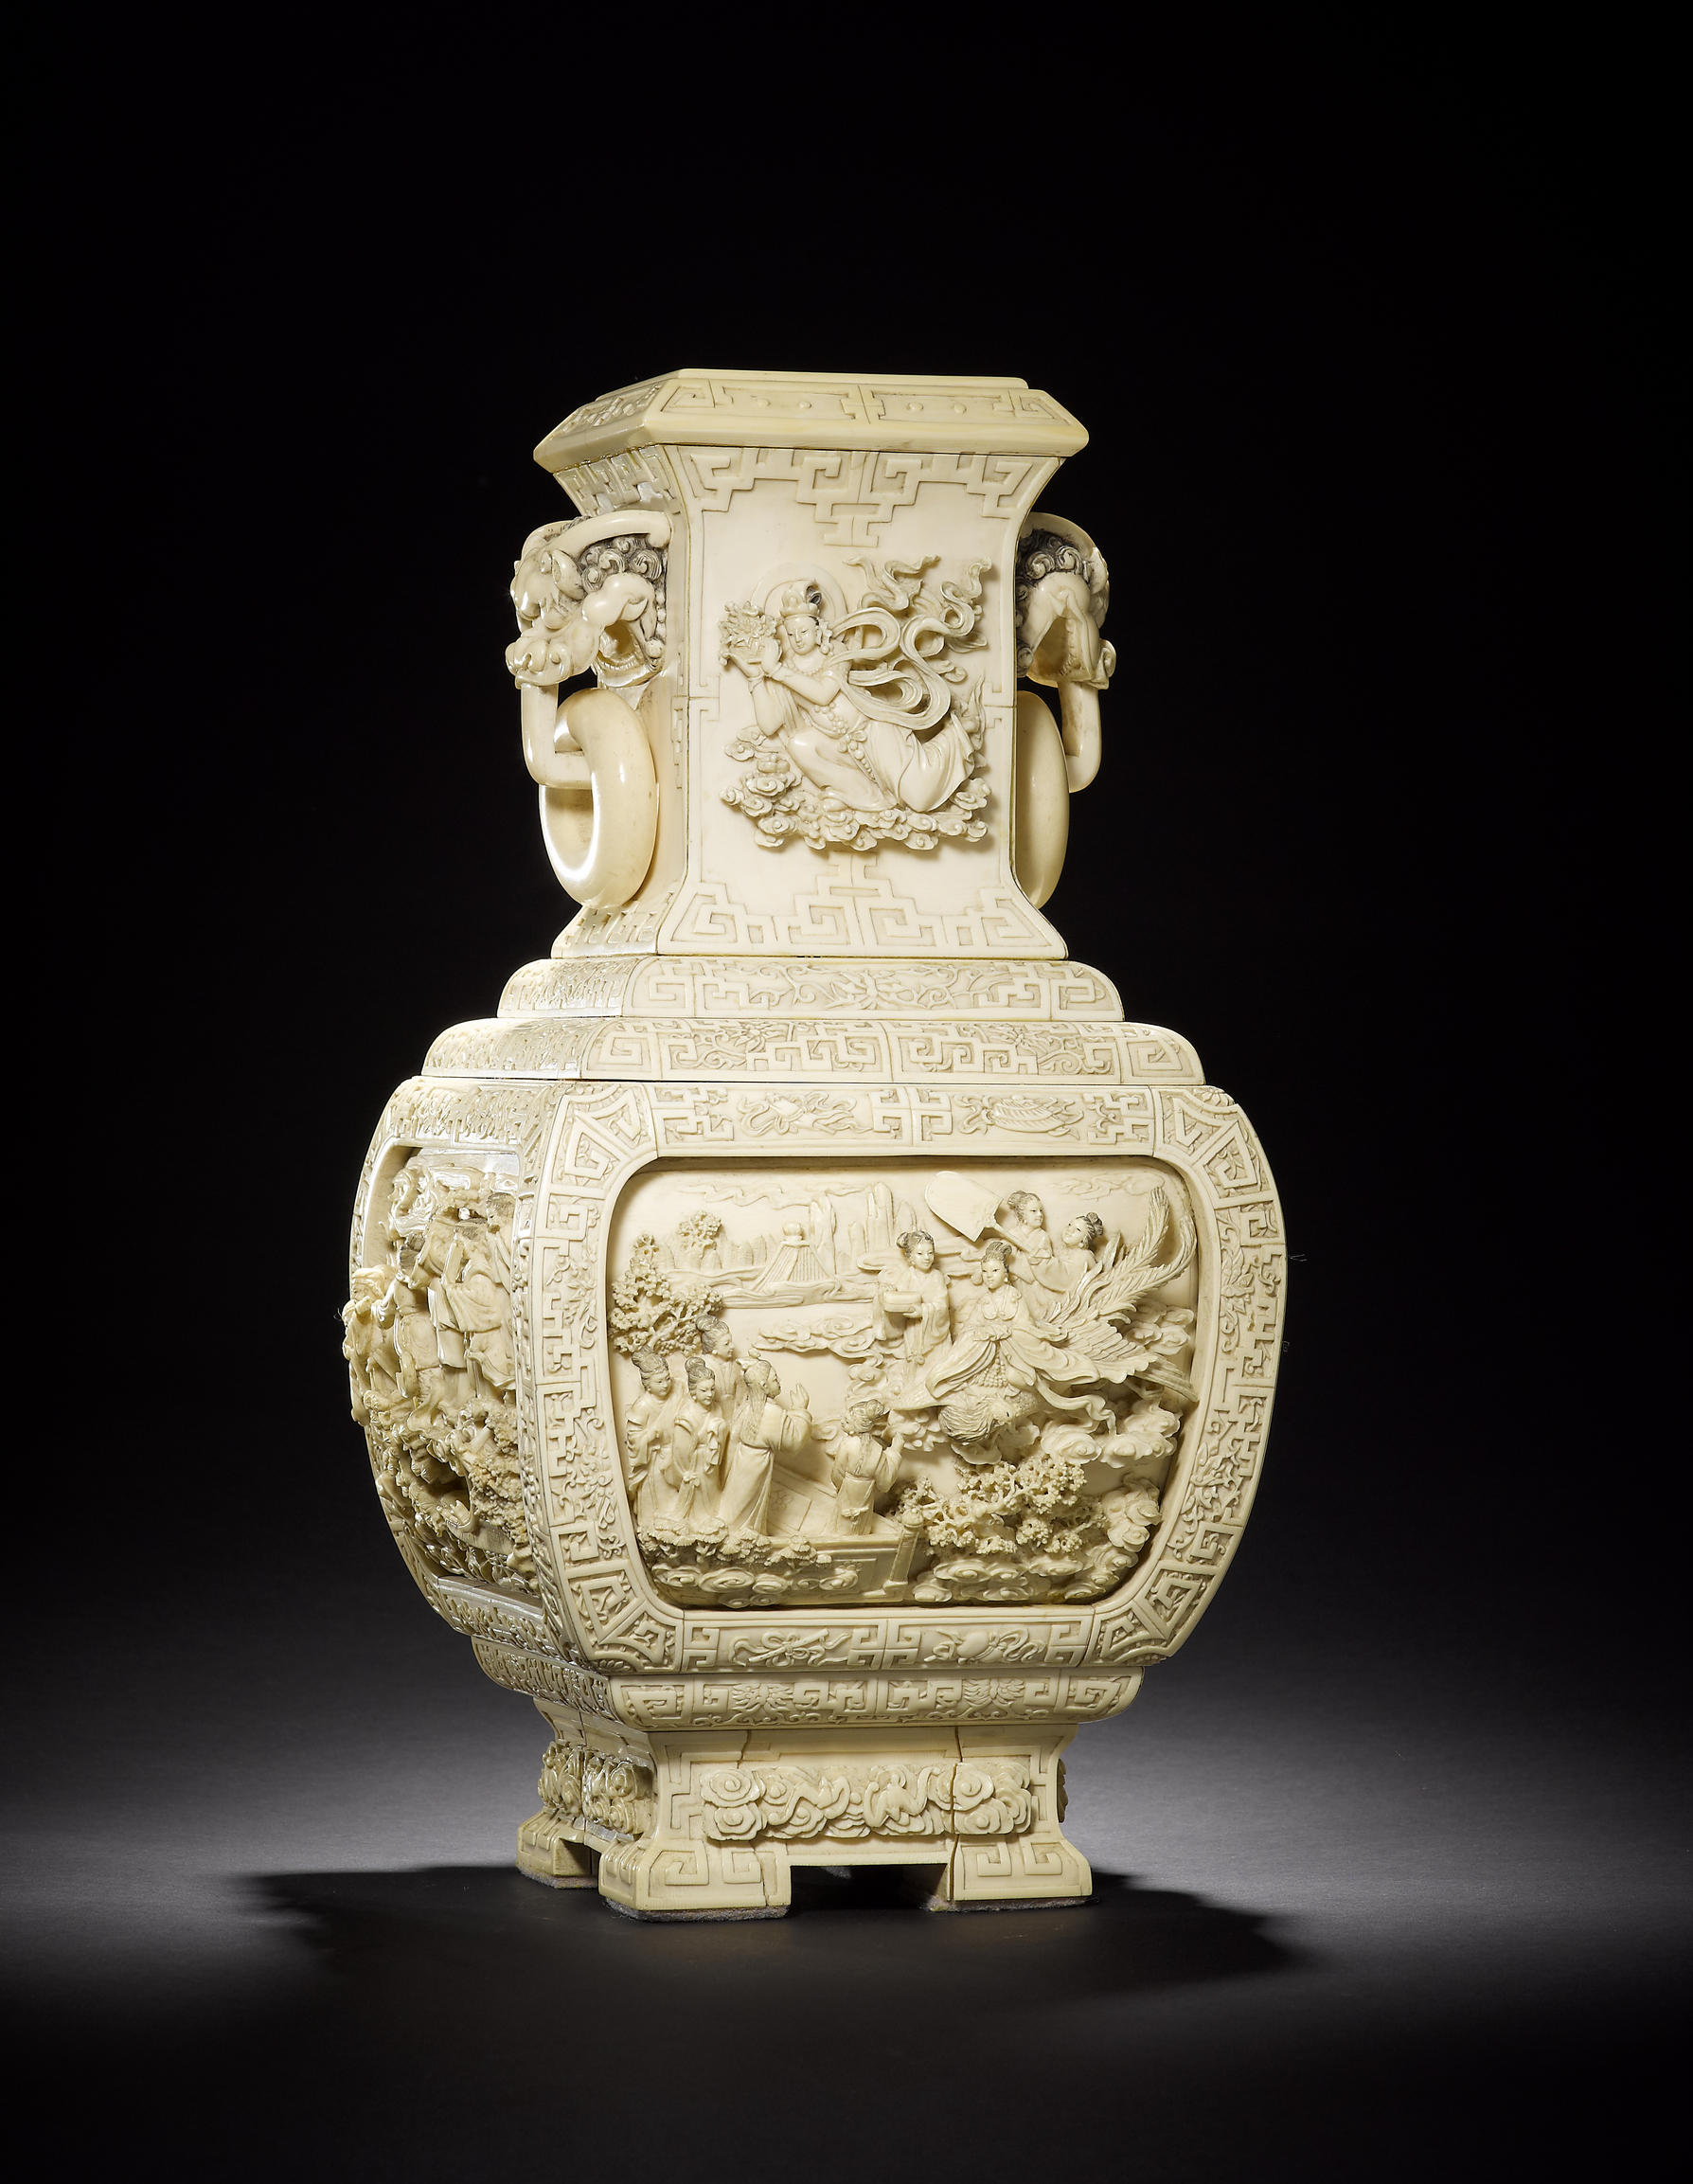 An extraordinary pair of large exquisitely carved ivory vases